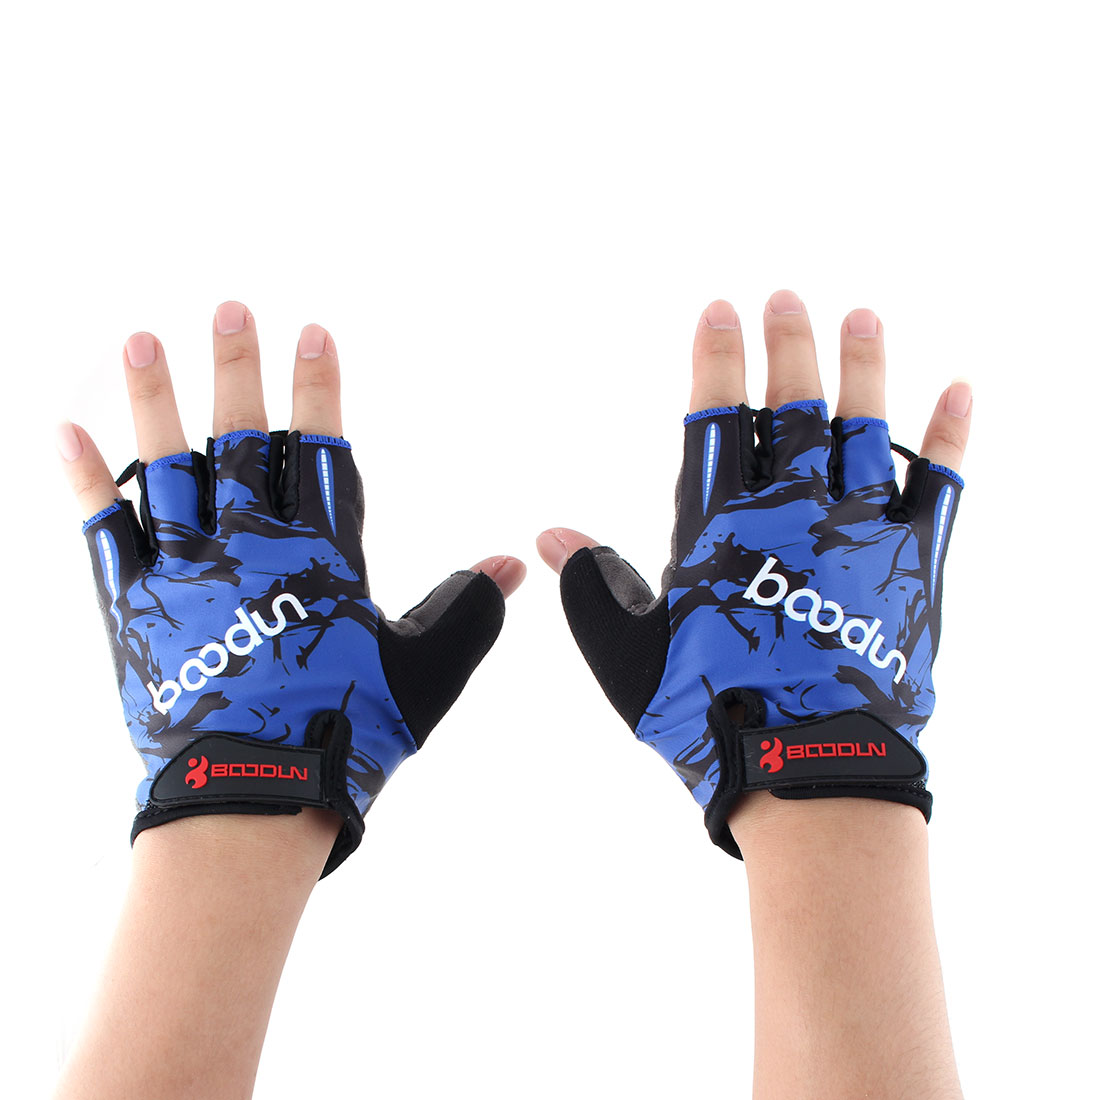 BOODUN Authorized Polyester Exercise Sports Gym Lifting Training Bodybuilding Protector Half Finger Fitness Gloves Blue S Pair